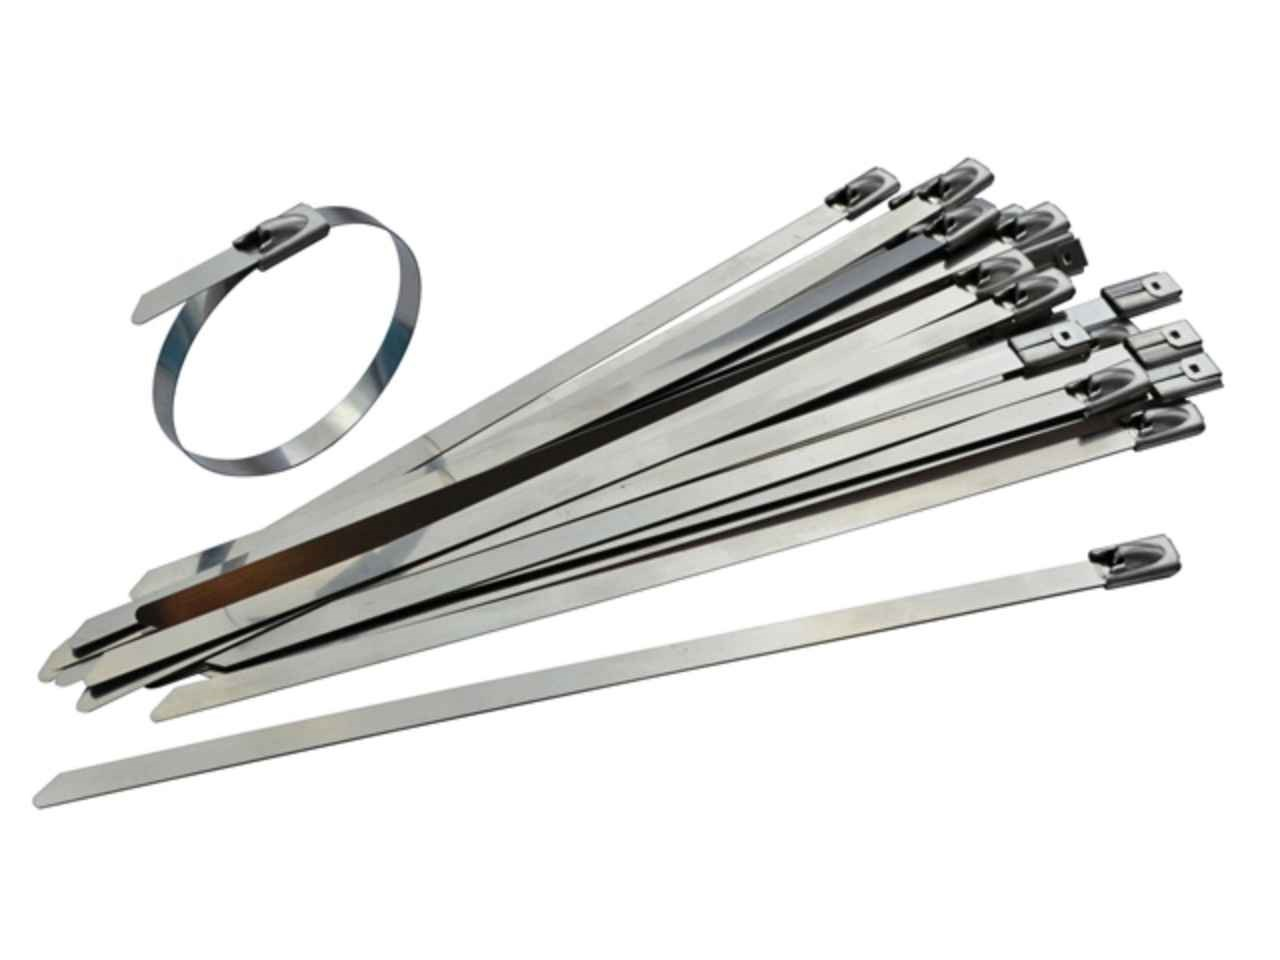 Stainless Steel Wire Ties : Faithfull faict ss stainless steel cable ties